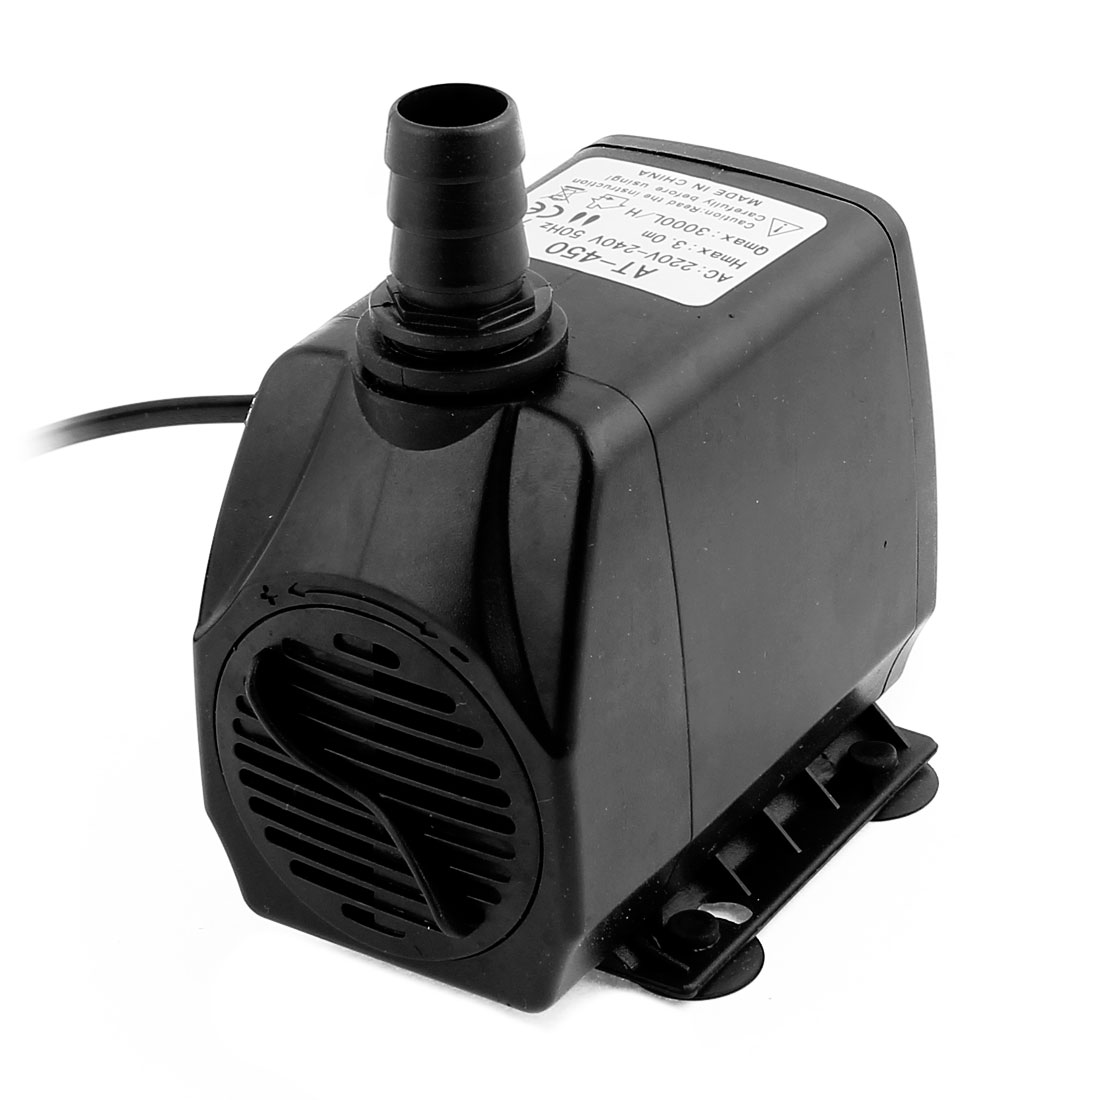 AC 220V-240V AU Plug 75W Electric Submersible Water Pump for Aquarium Fountain Pond w Switch